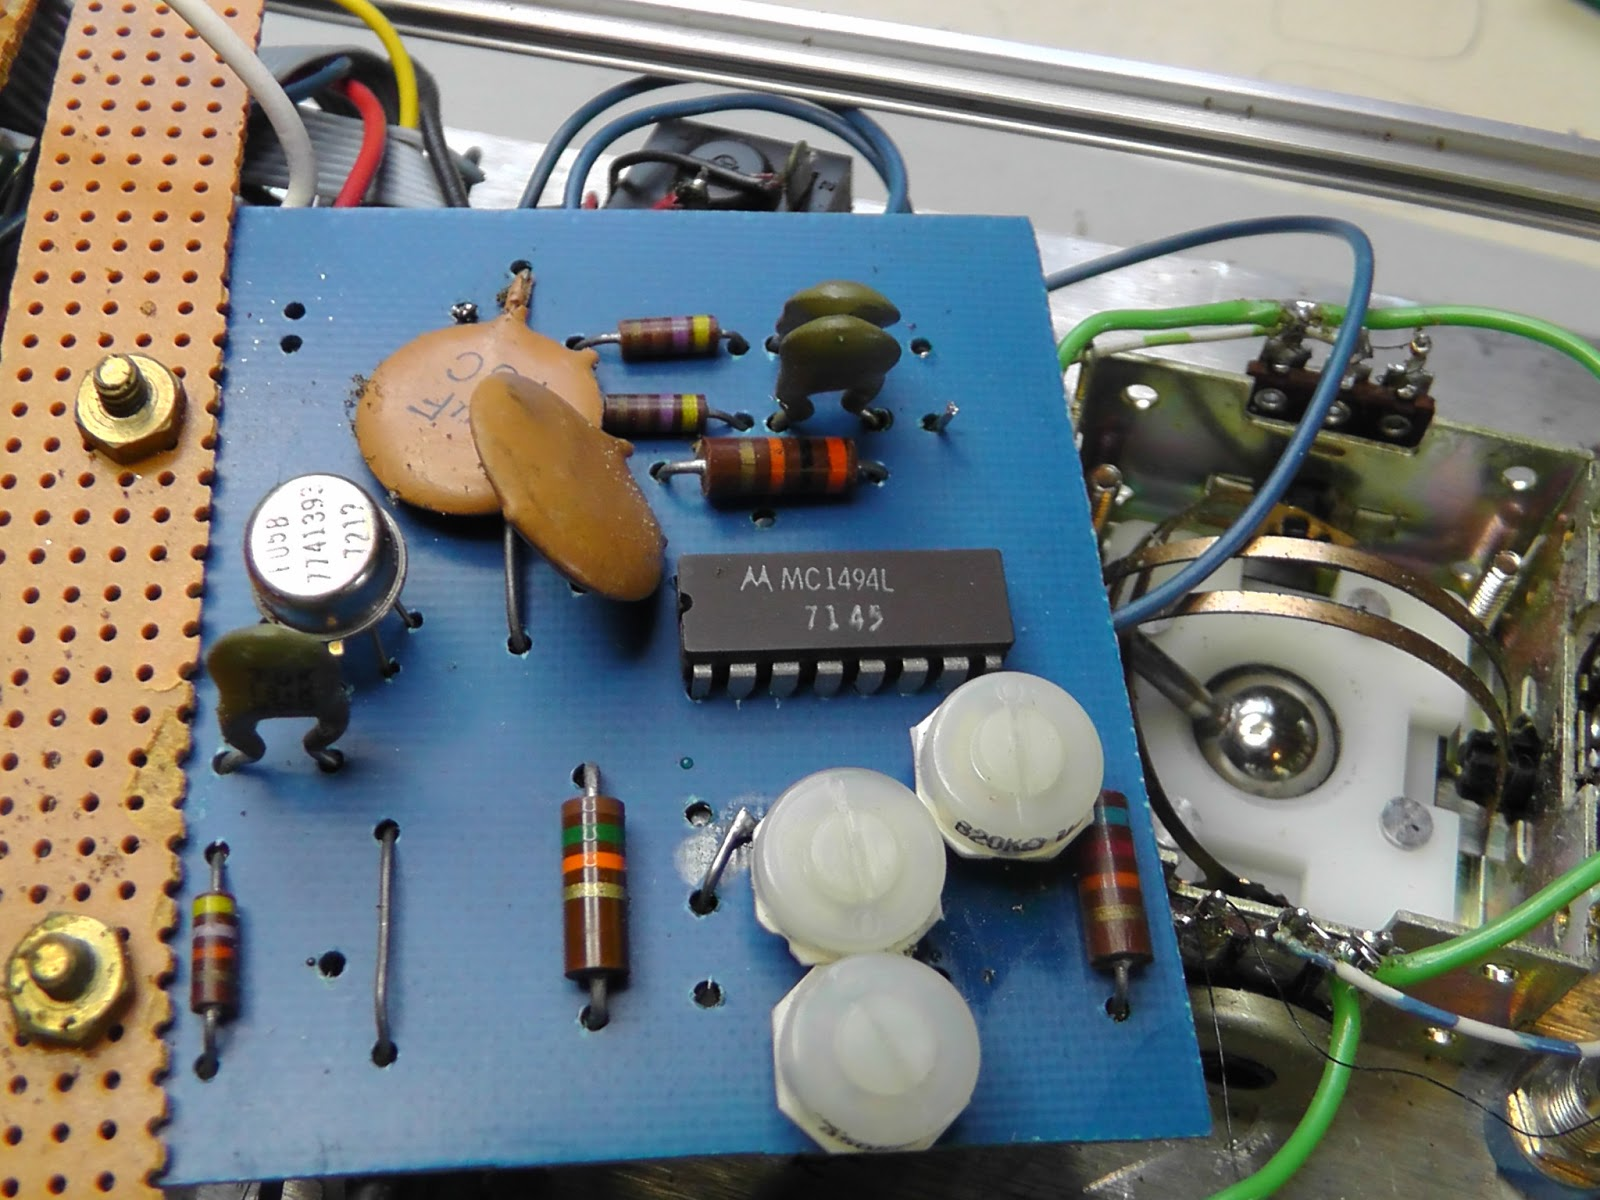 Ua741 Op Amp Diagram Free Wiring For You Introduction To 741 Operational Amplifier Tutorial Electronic Nonlinearcircuits Meets Serge Driscoll Circuit Pin